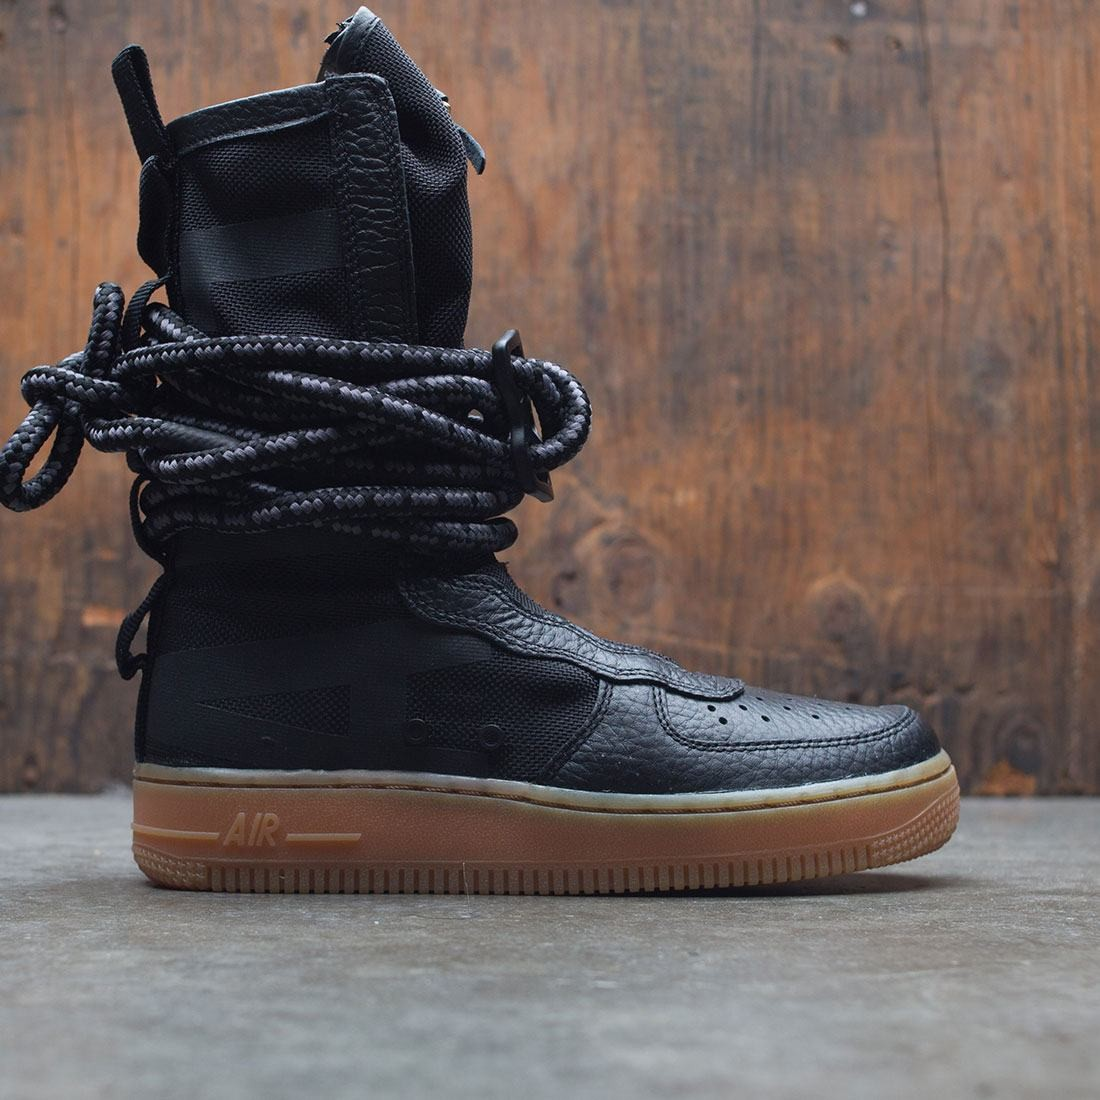 nike women sf air force 1 hi boot black black gum light brown 9e1705a09